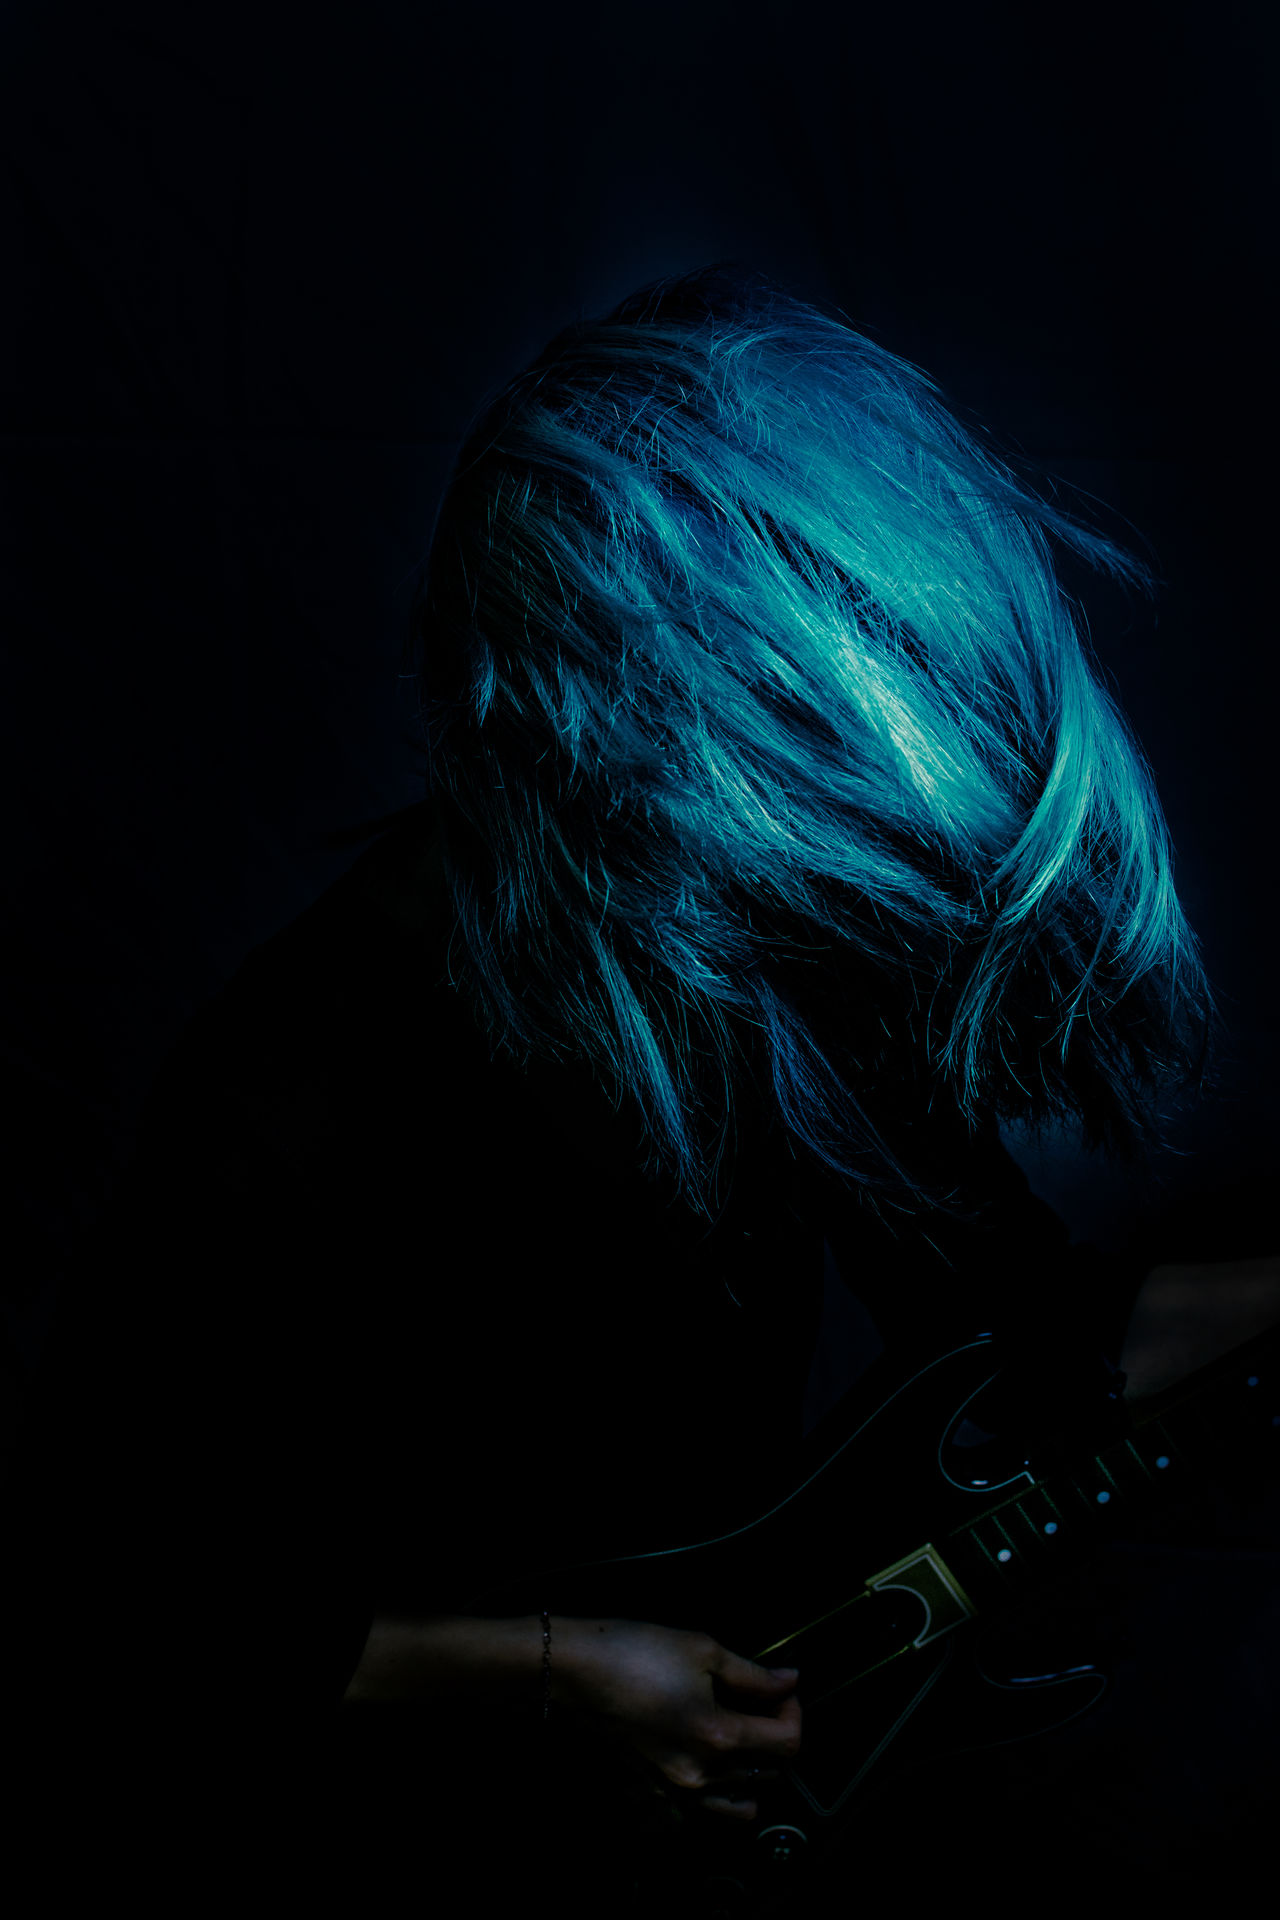 Born the be wild! Asian  Asian Woman Black Background Blue Blue Hair Born To Be Wild Feeling Good Human Hair Korean Looking Down Music Musical Instrument Musician One Person Passion Performance Playing Guitar Portrait Shake Studio Shot Wild Young Adult Young Woman